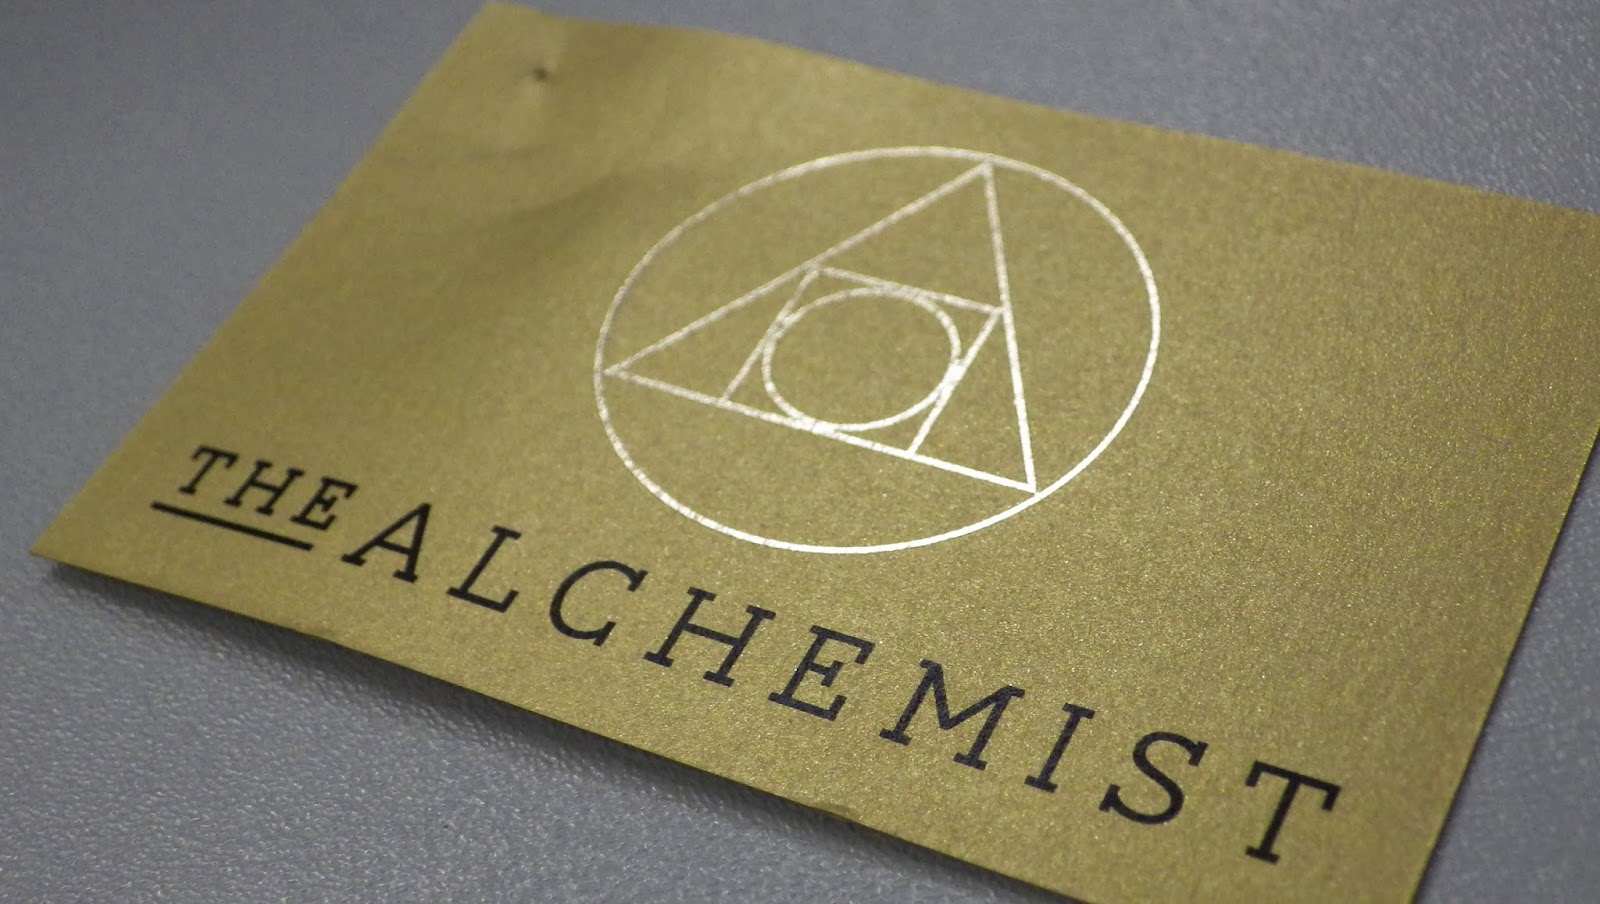 alchemist foil usage Start studying the alchemist learn vocabulary, terms, and more with flashcards, games, and other study tools.